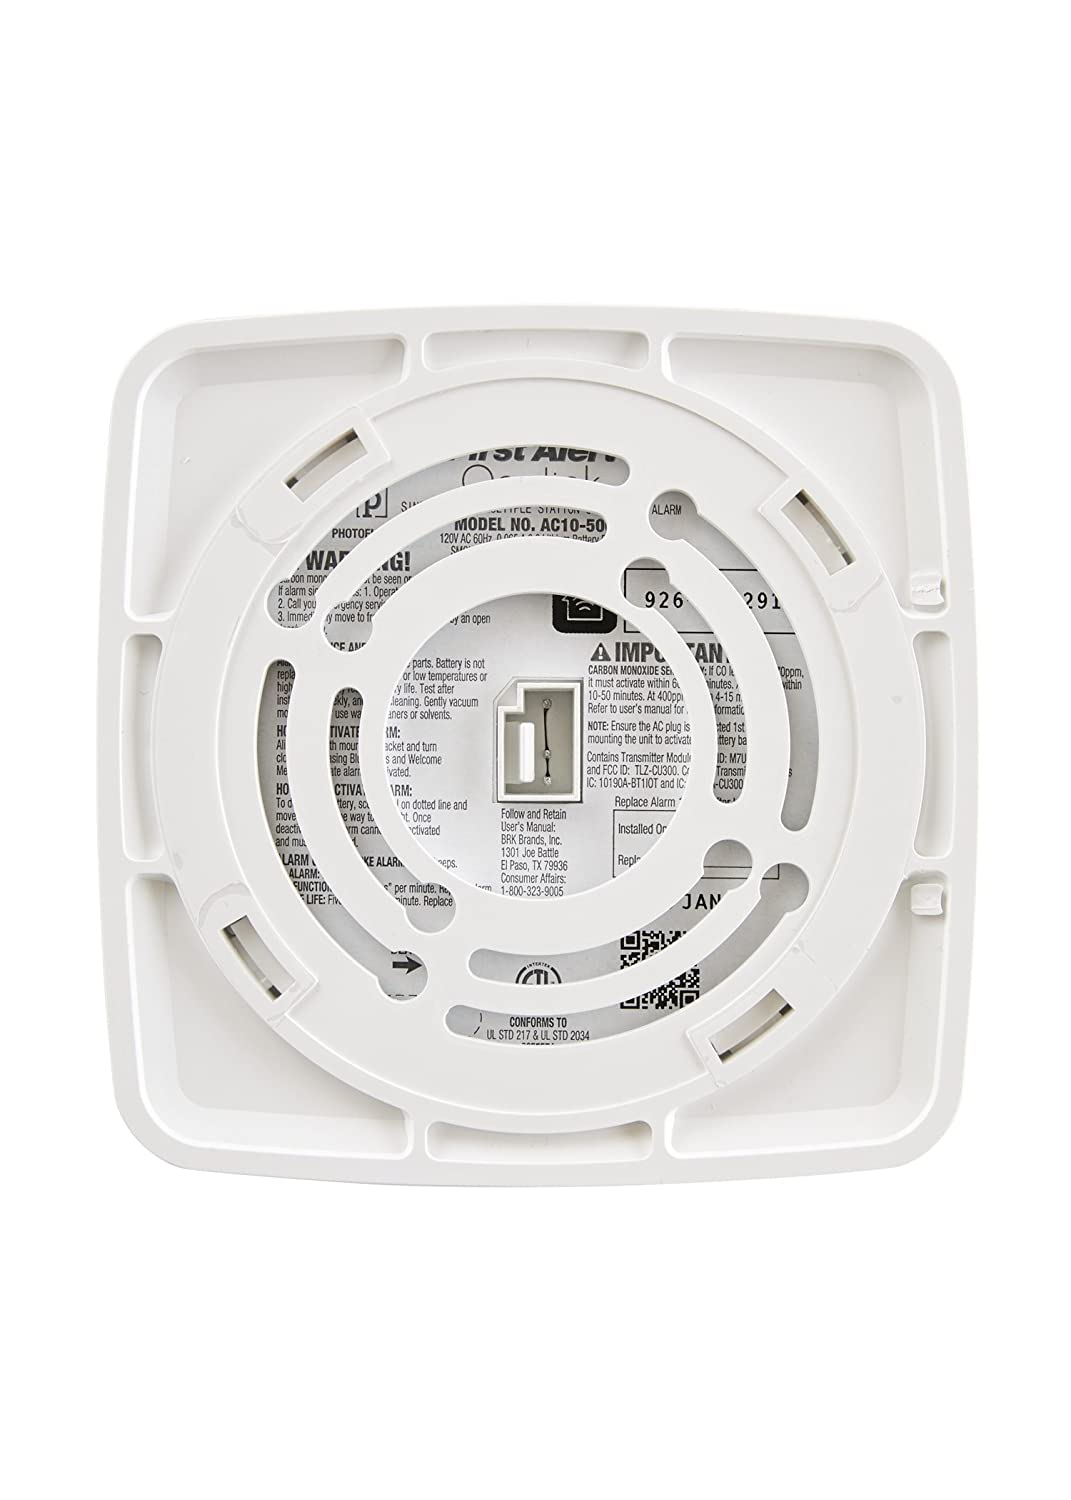 Onelink Wi-Fi Smoke + Carbon Monoxide Alarm, Hardwired, Apple ...